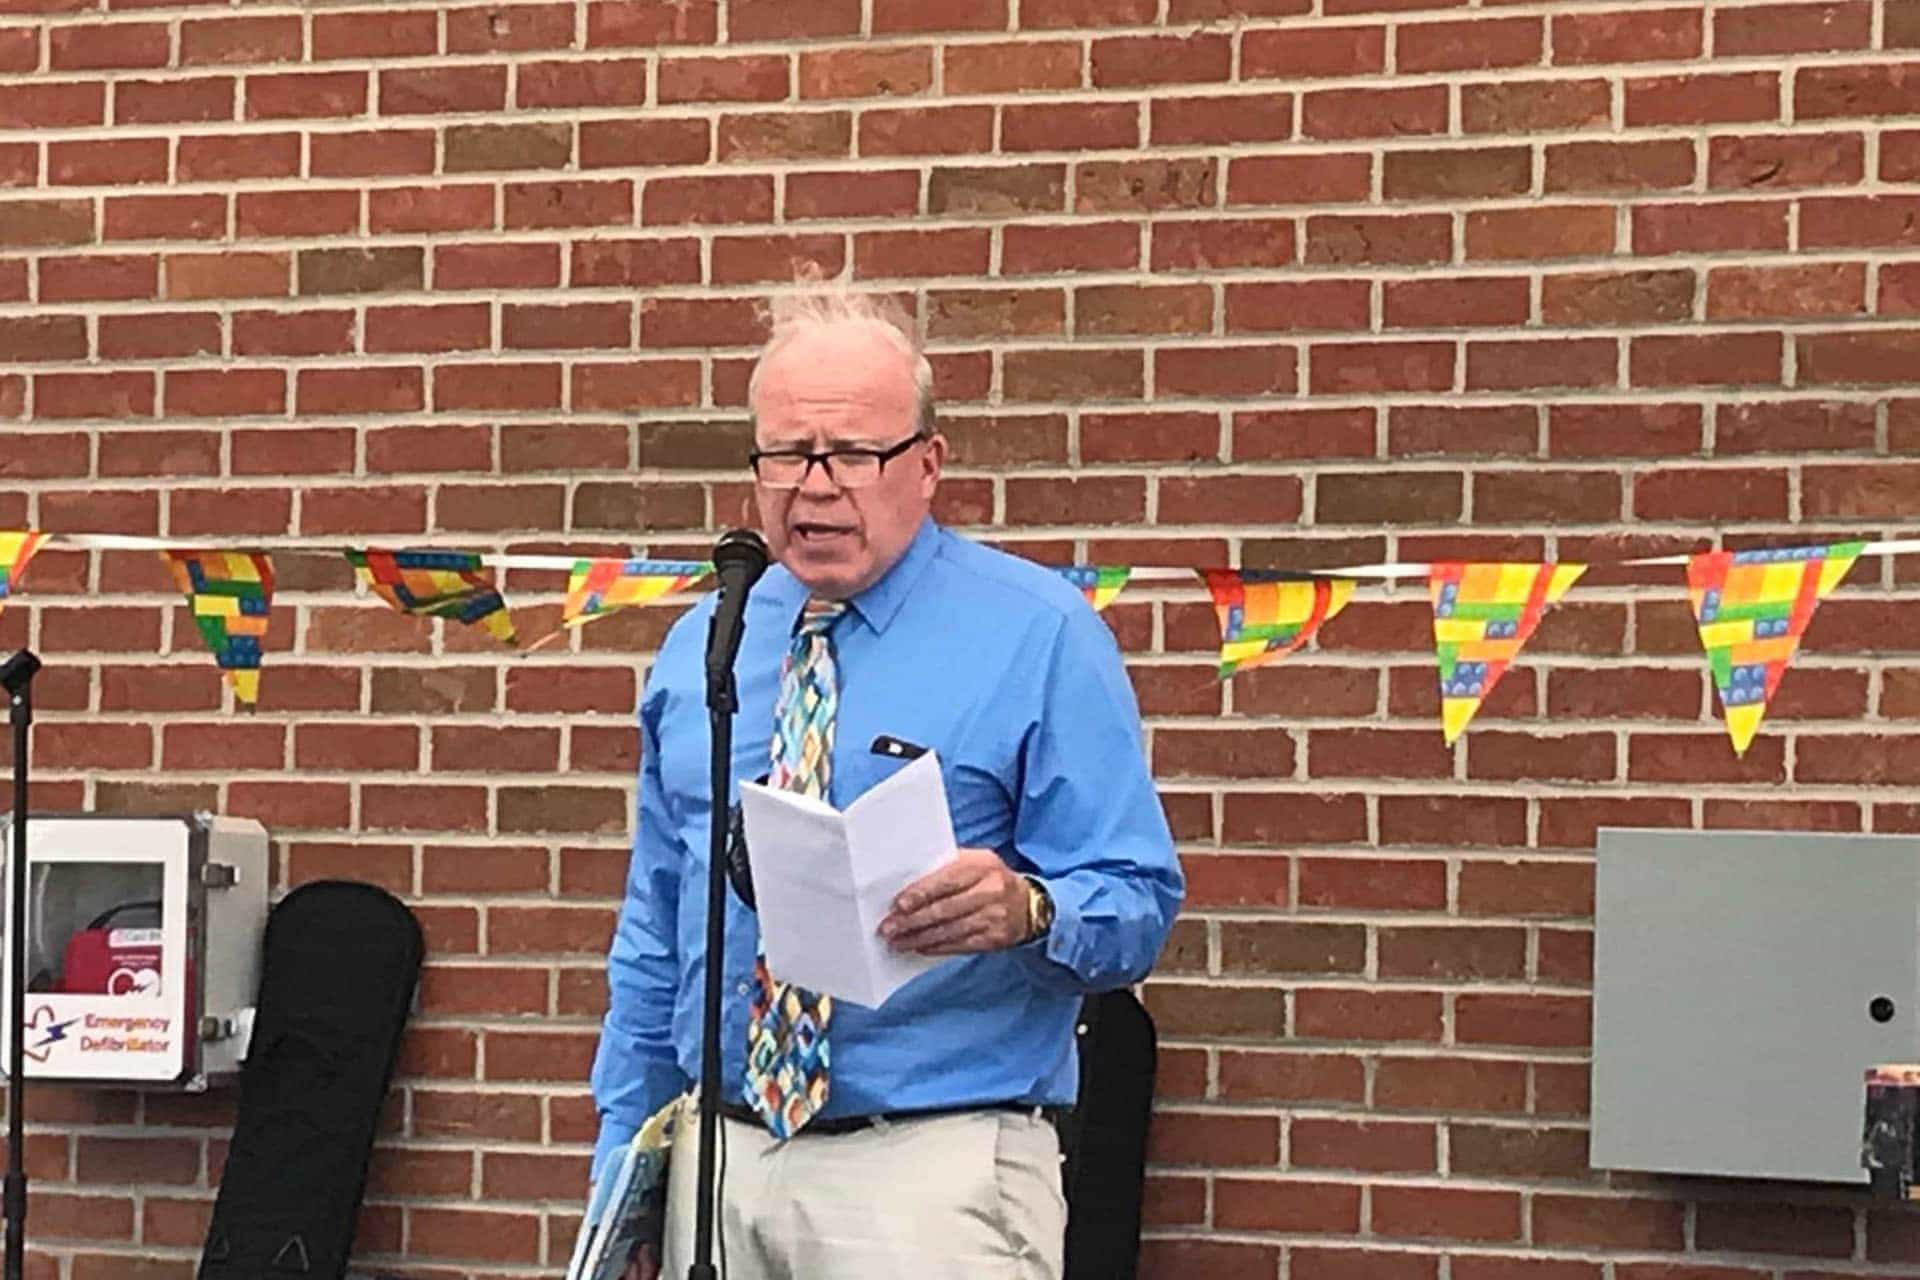 City of Buckhannon Mayor's remarks at  Buckhannon Pride event at Jawbone Park